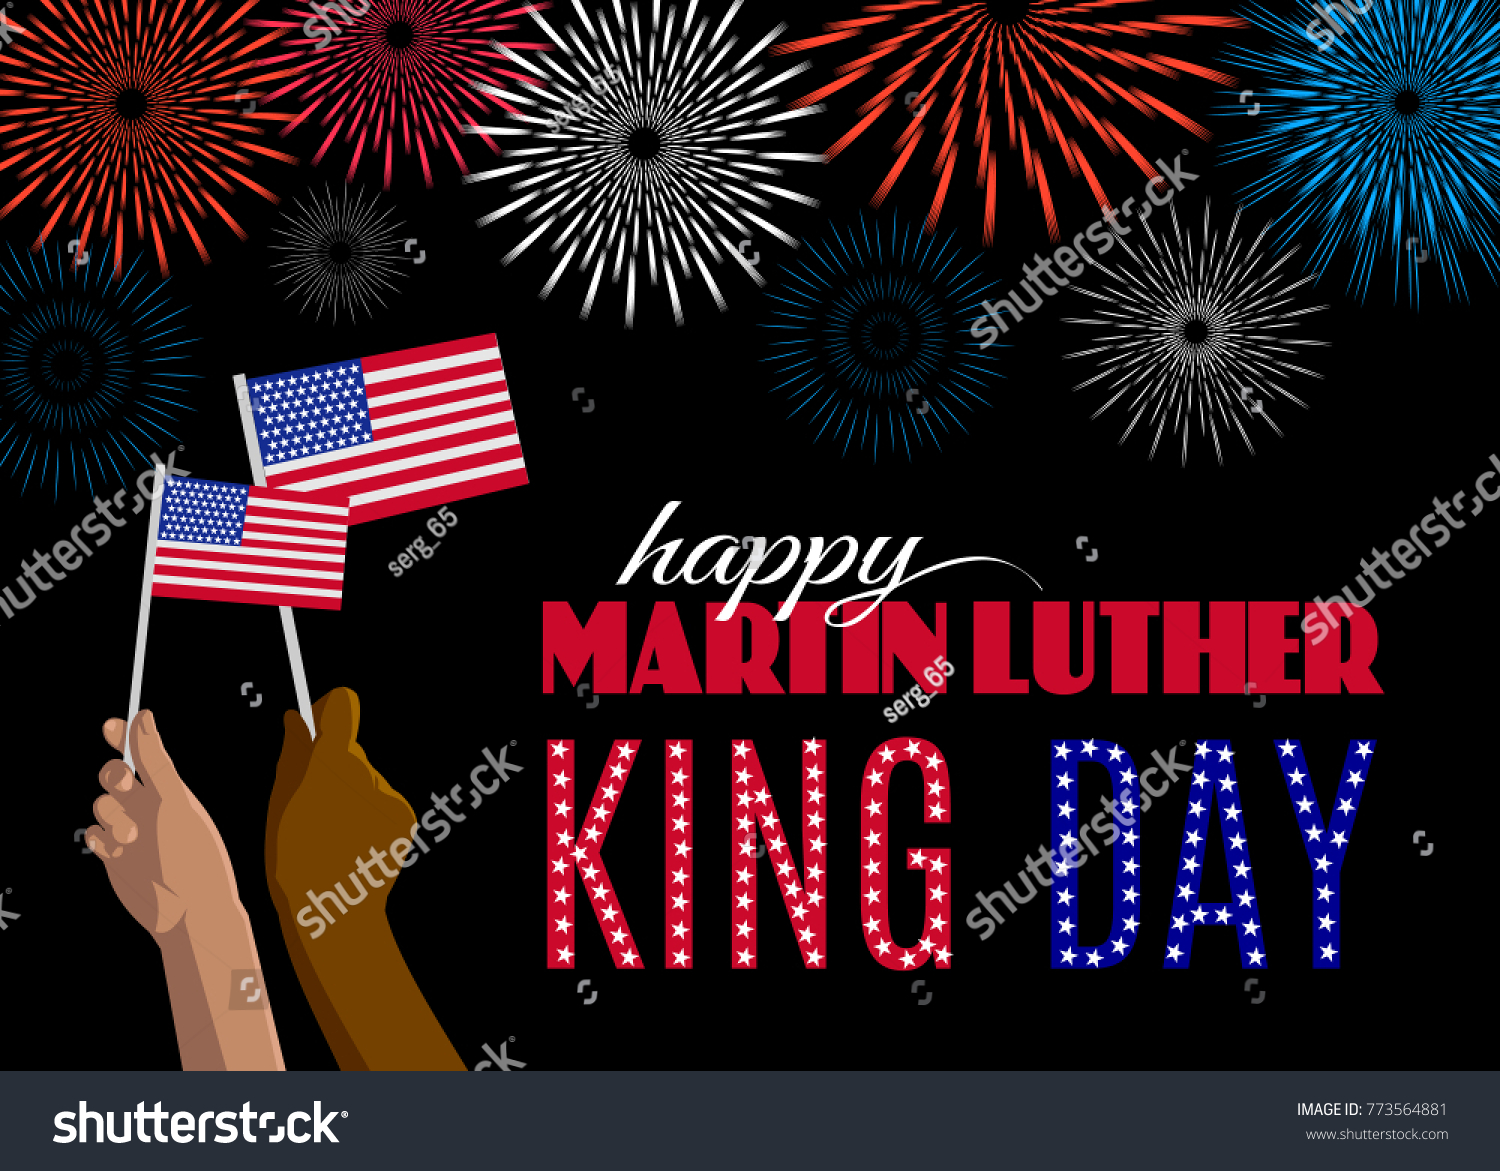 Happy Martin Luther King Day Placard Stock Vector Royalty Free